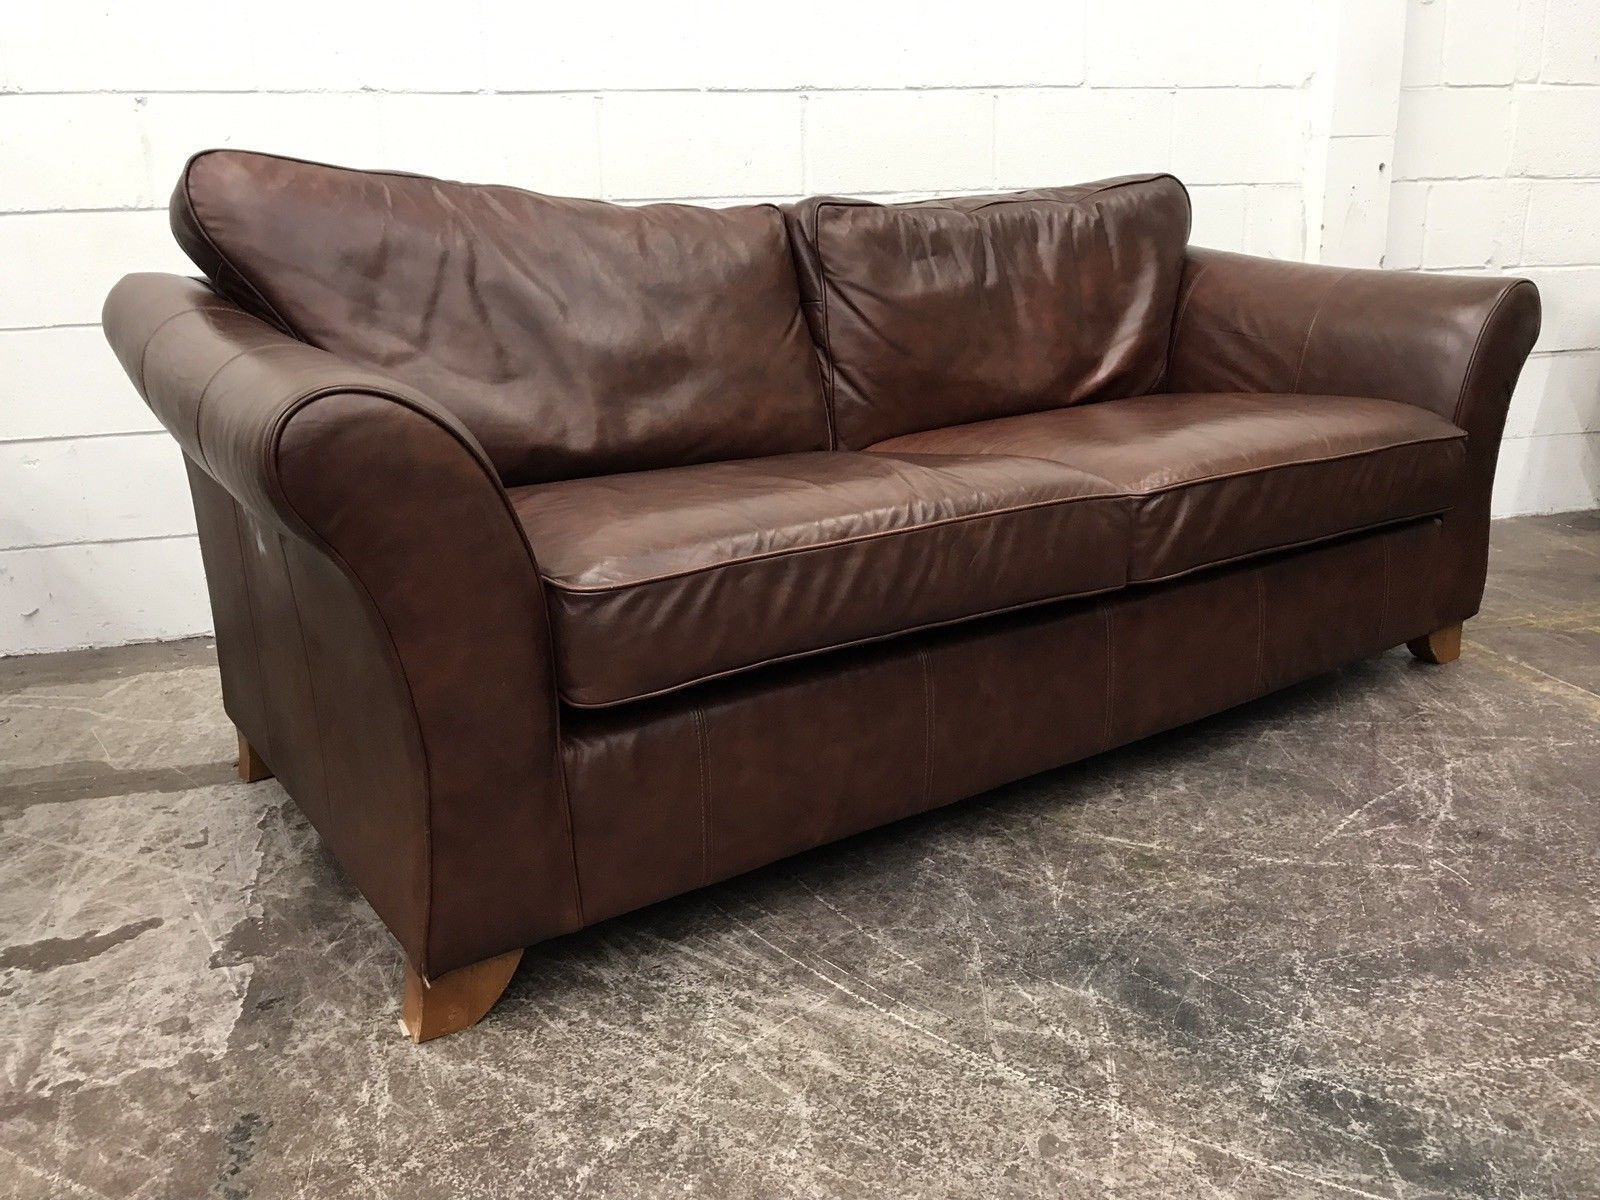 Brown Leather Sofa Marks And Spencer Livingroomideas Brown